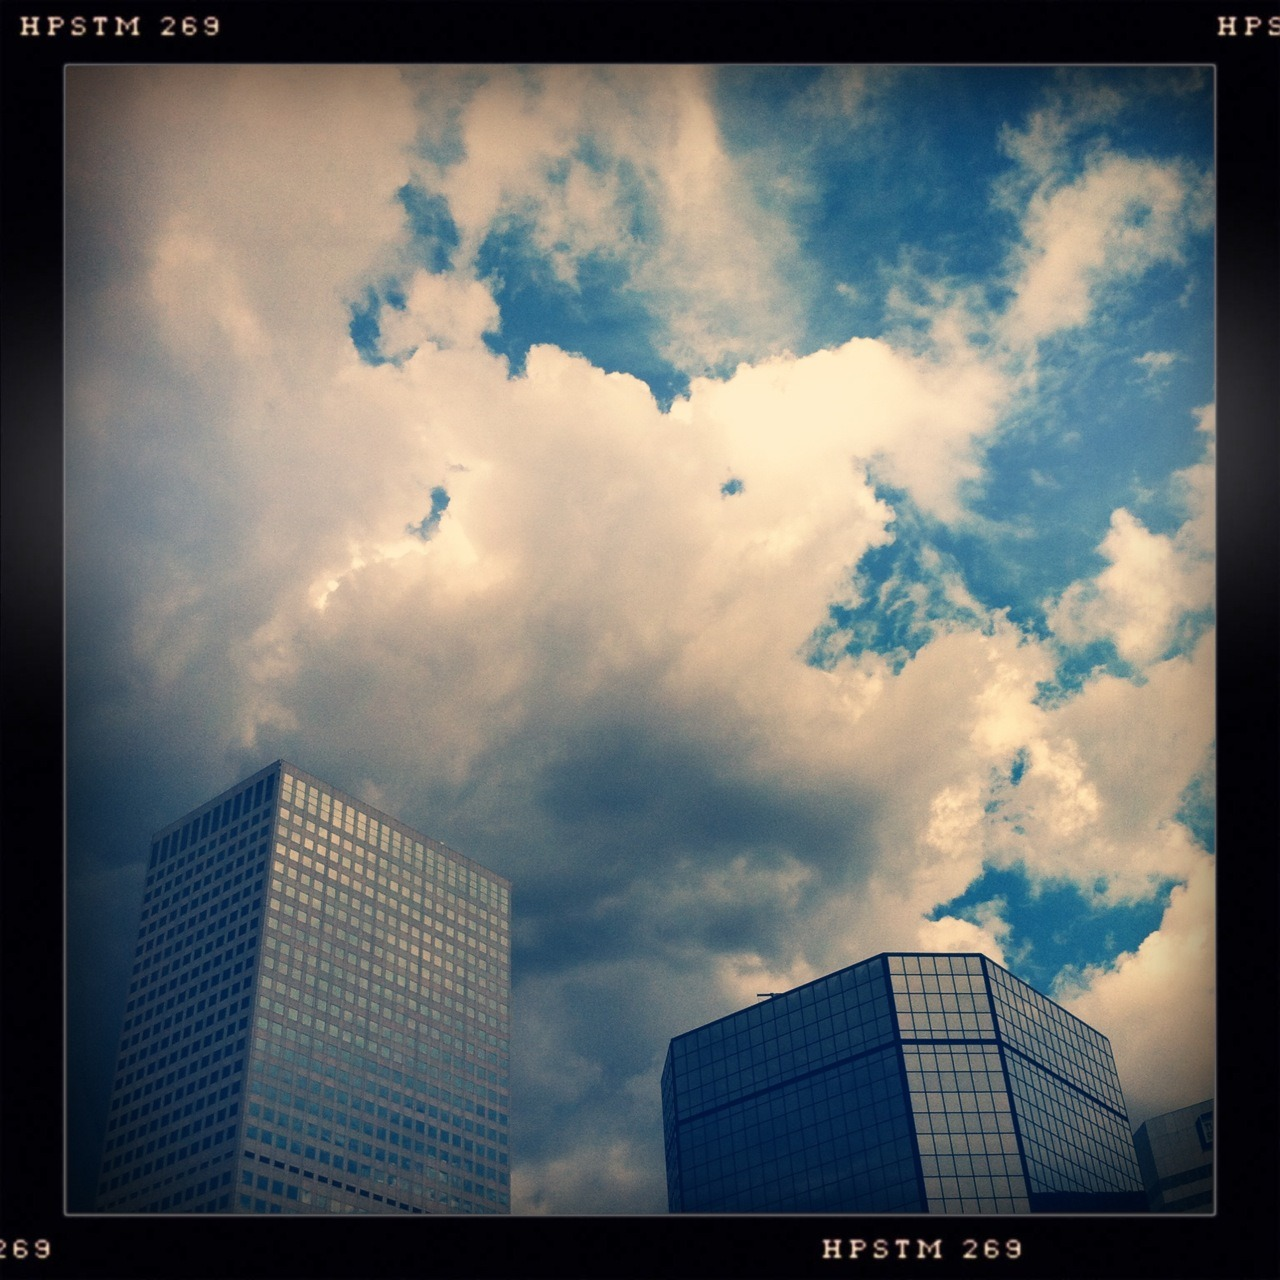 Storm Over Downtown Taken with Hipstamatic, Tejas Lens, Pistil Film, No Flash.